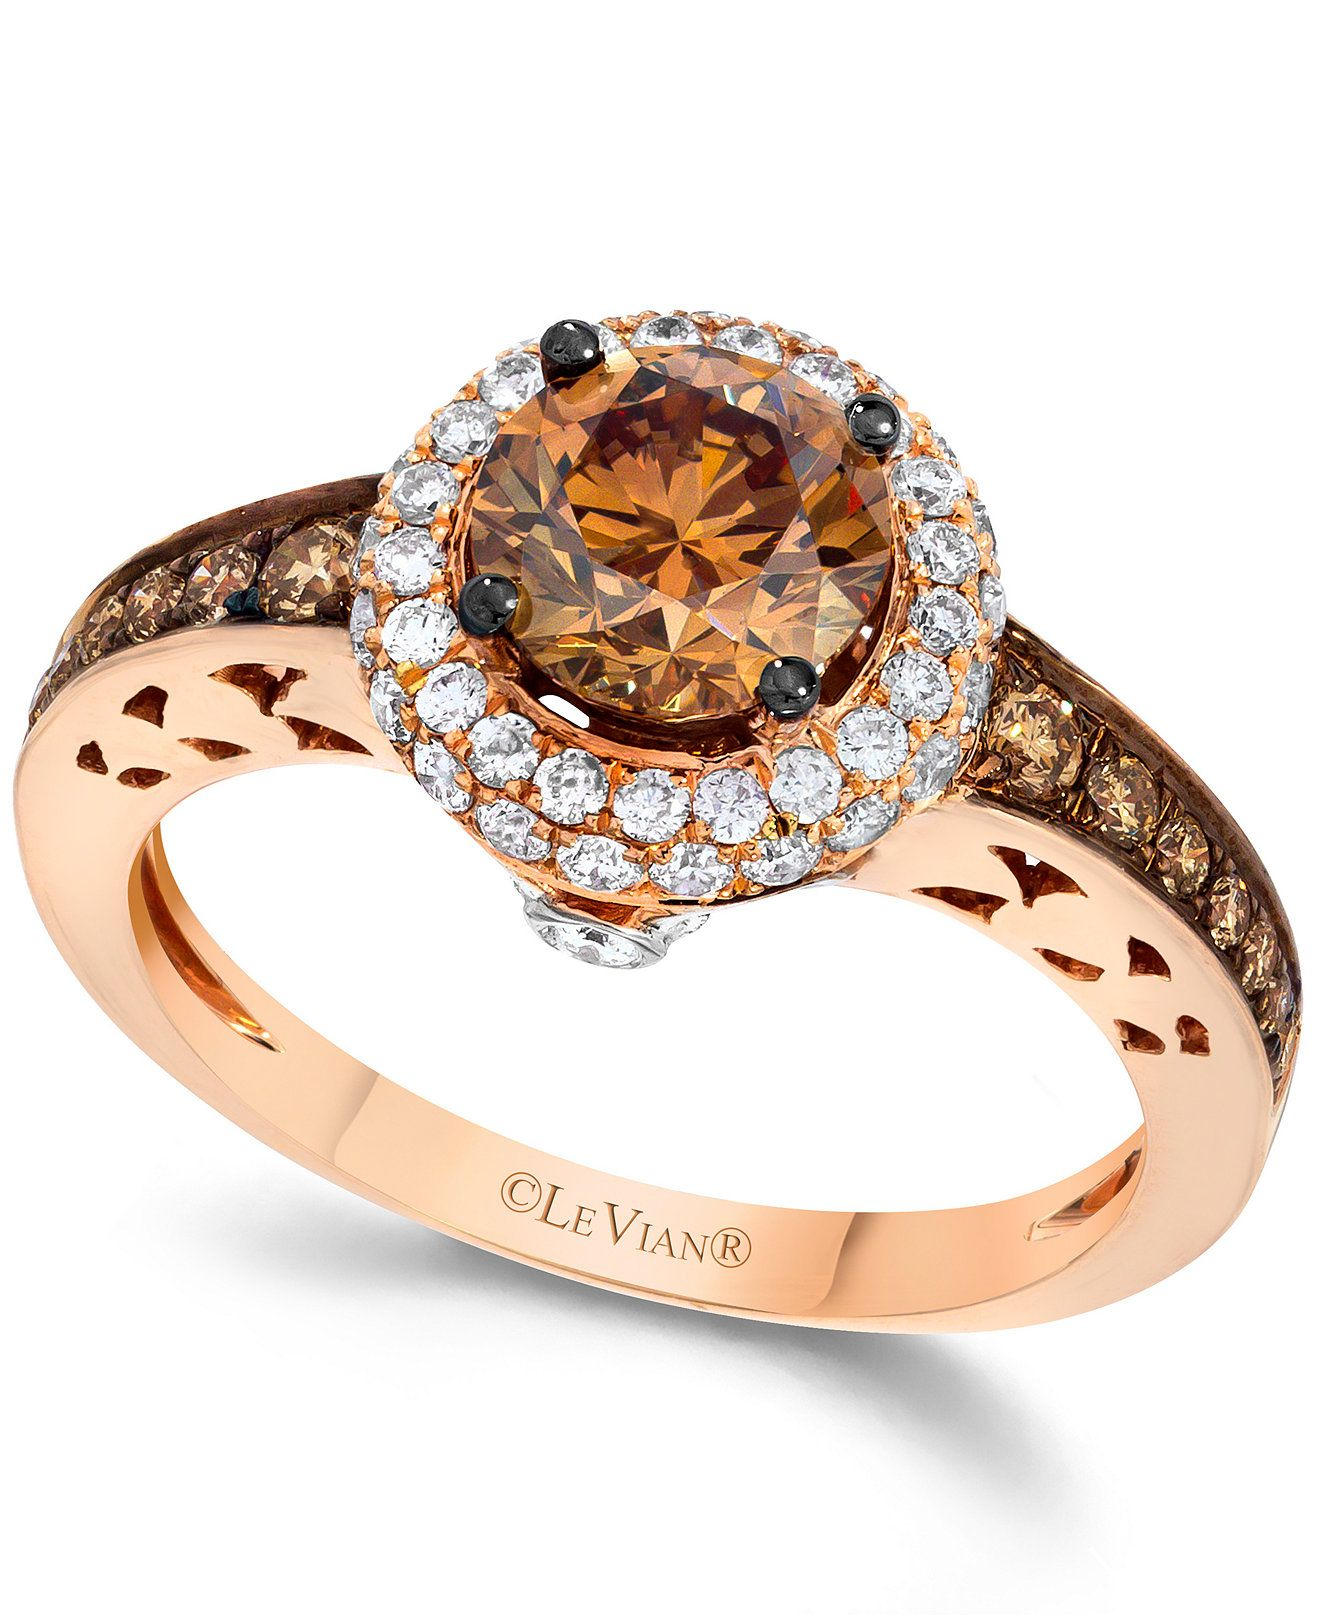 le vian wedding bands Le Vian Chocolate and White Diamond Engagement Ring in 14k Rose Gold 1 5